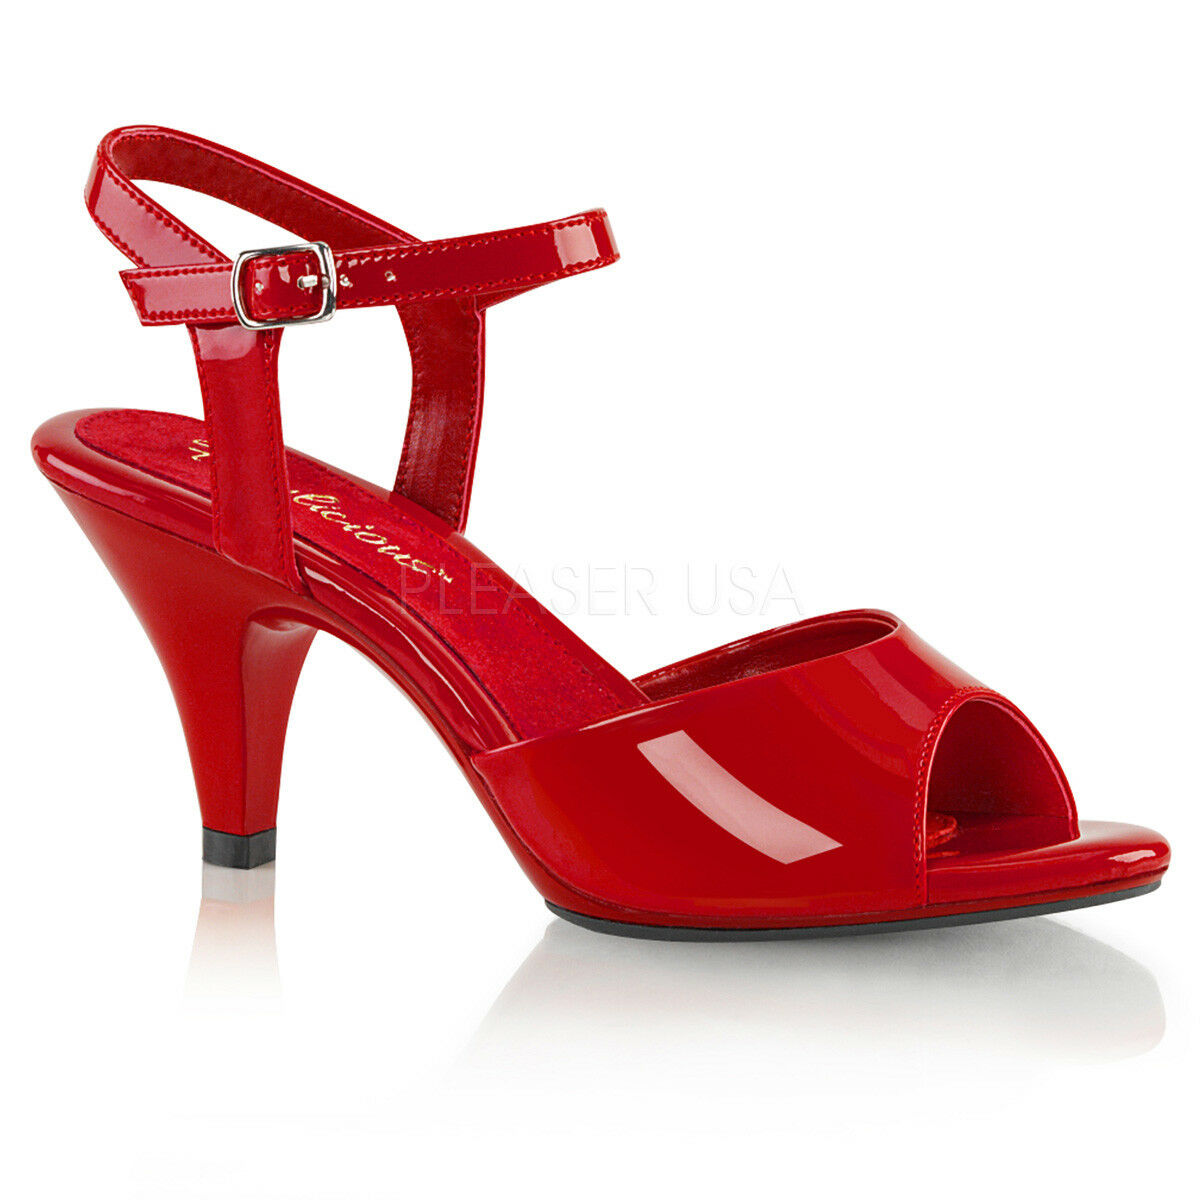 PLEASER FABULICIOUS BELLE-309 rot PATENT ANKLE STRAP STRAP STRAP SANDALS schuhe fb8e82